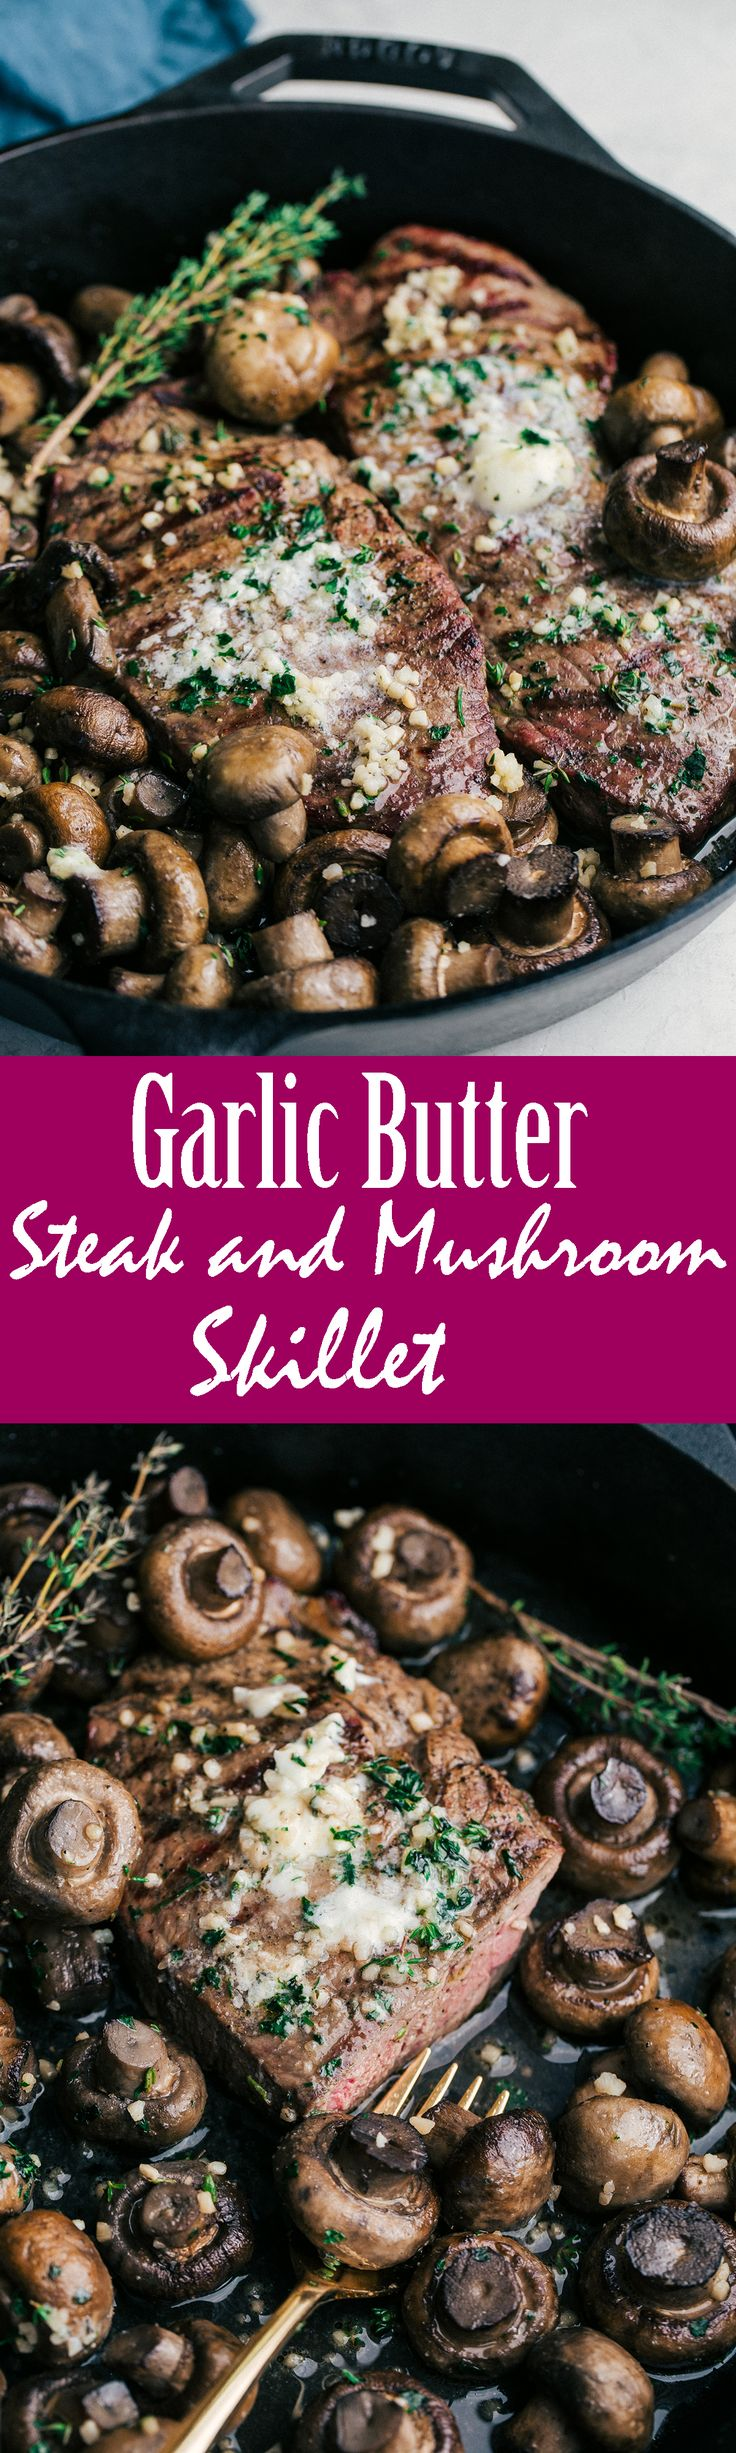 Garlic Butter Steak & Mushroom Skillet